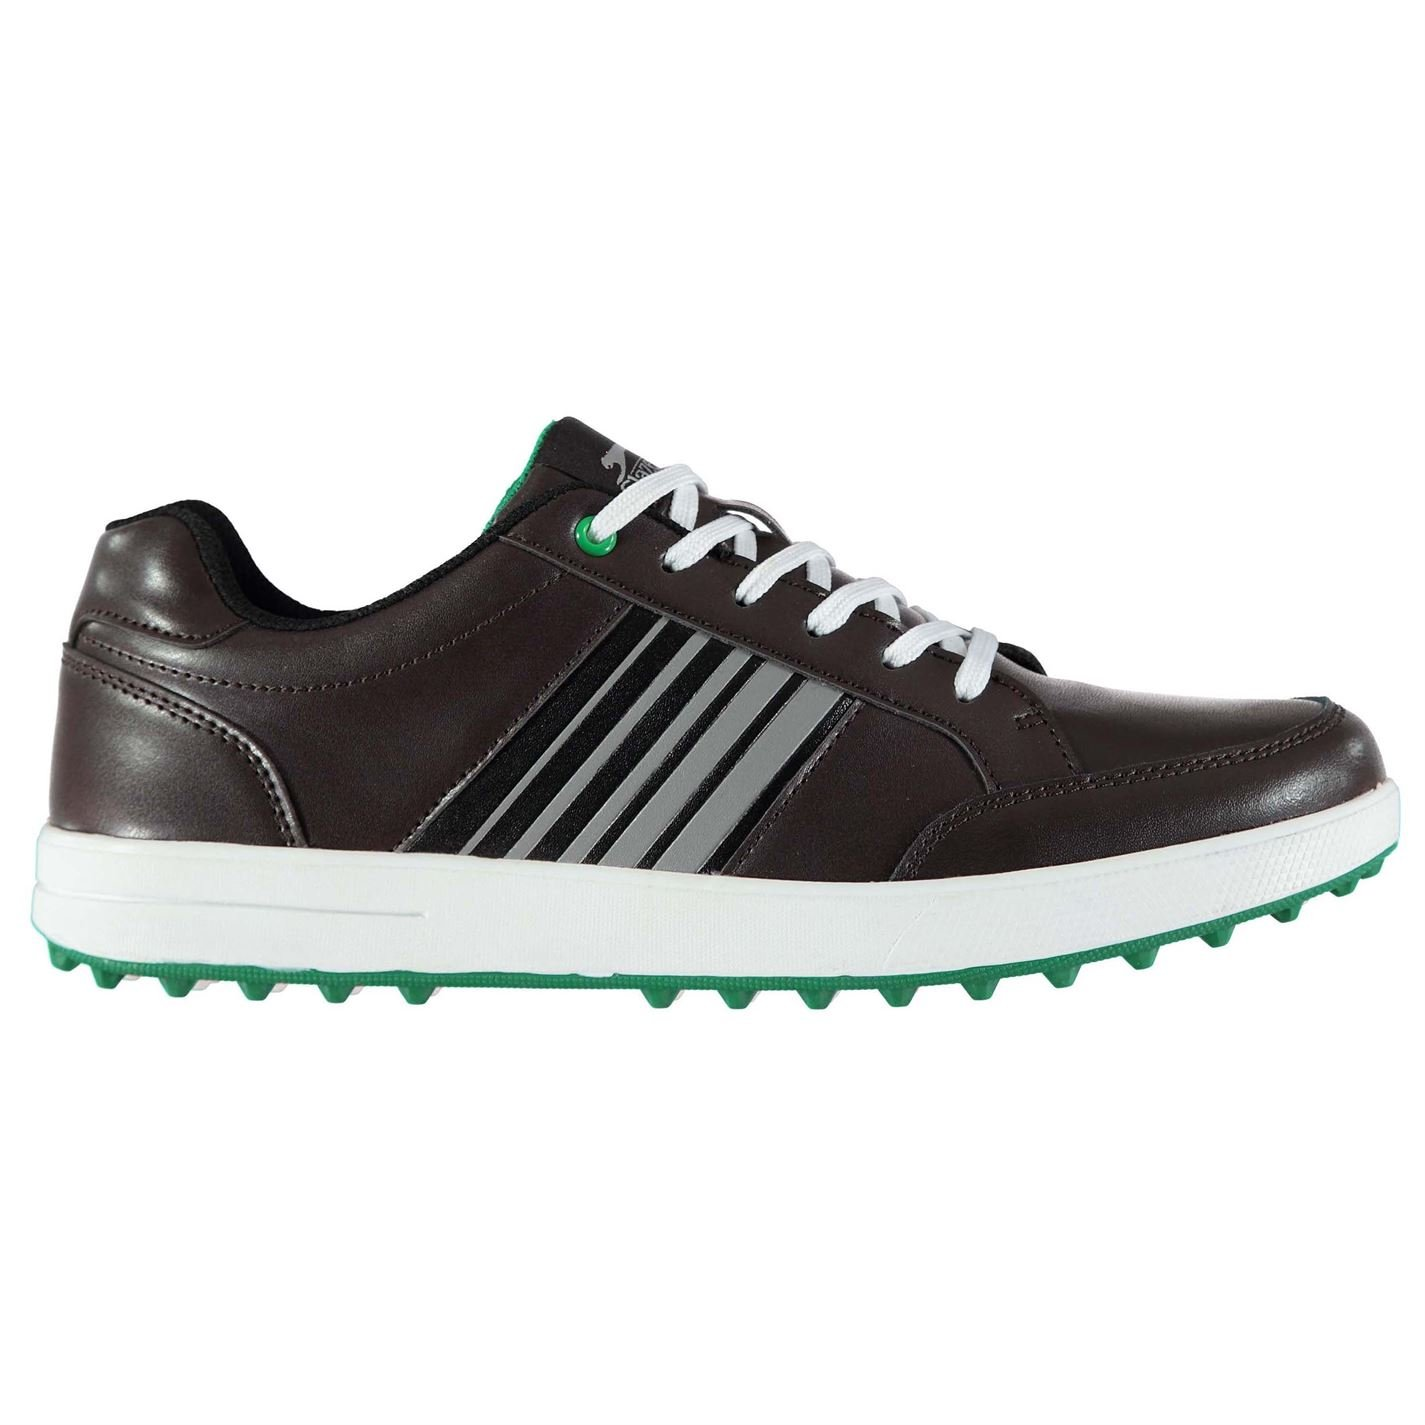 new product 43230 a4590 Slazenger Mens Casual Golf Shoes Amazon.co.uk Shoes  Bags